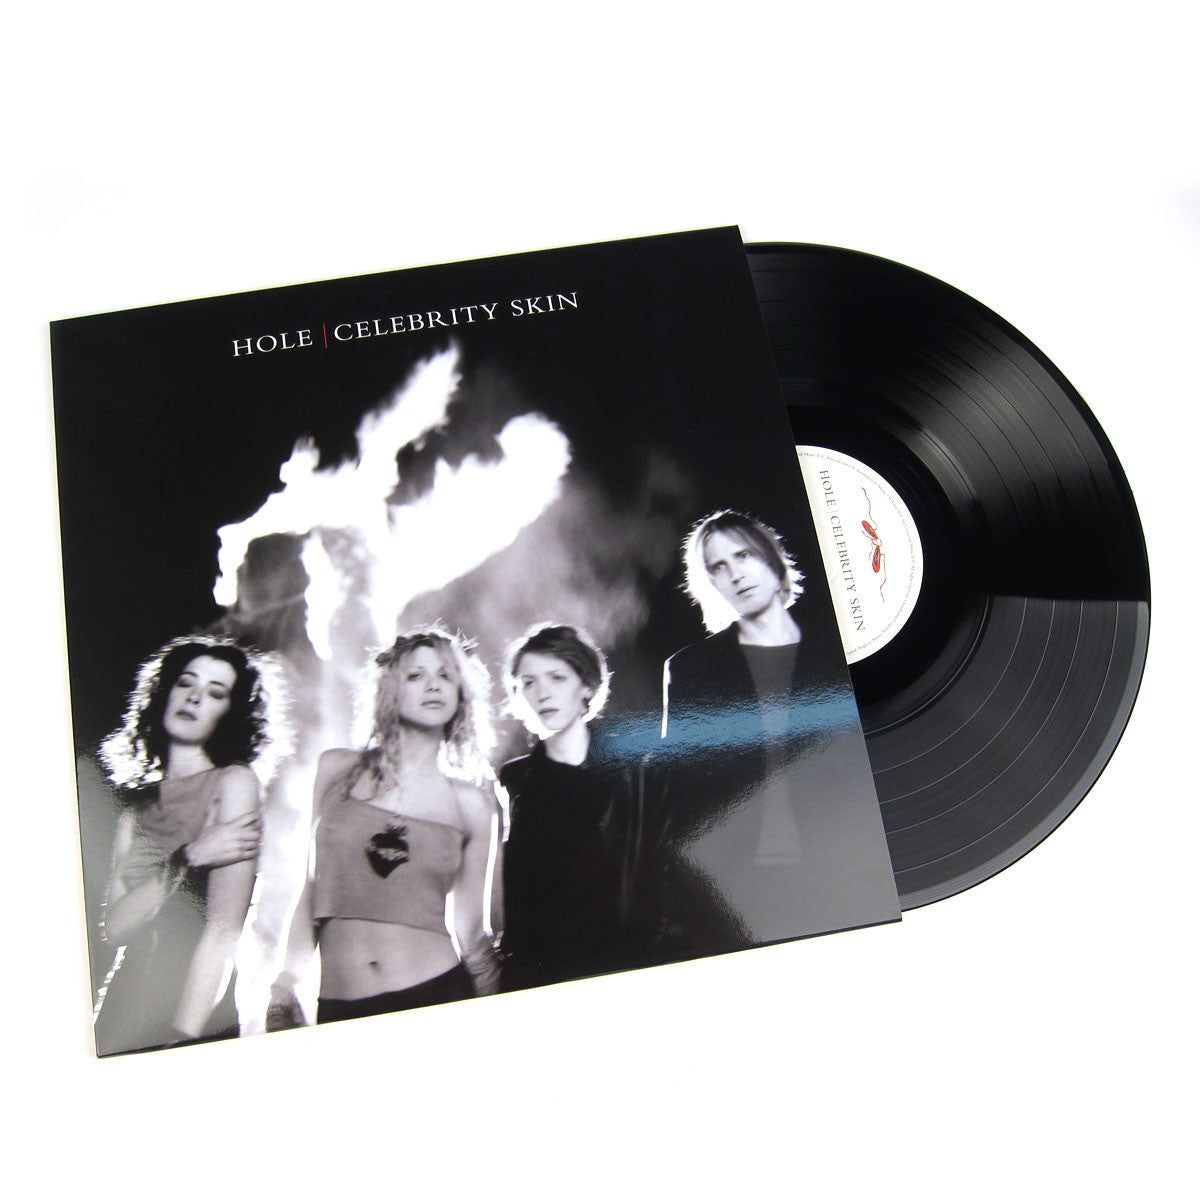 Hole: Celebrity Skin (Music On Vinyl 180g) Vinyl LP